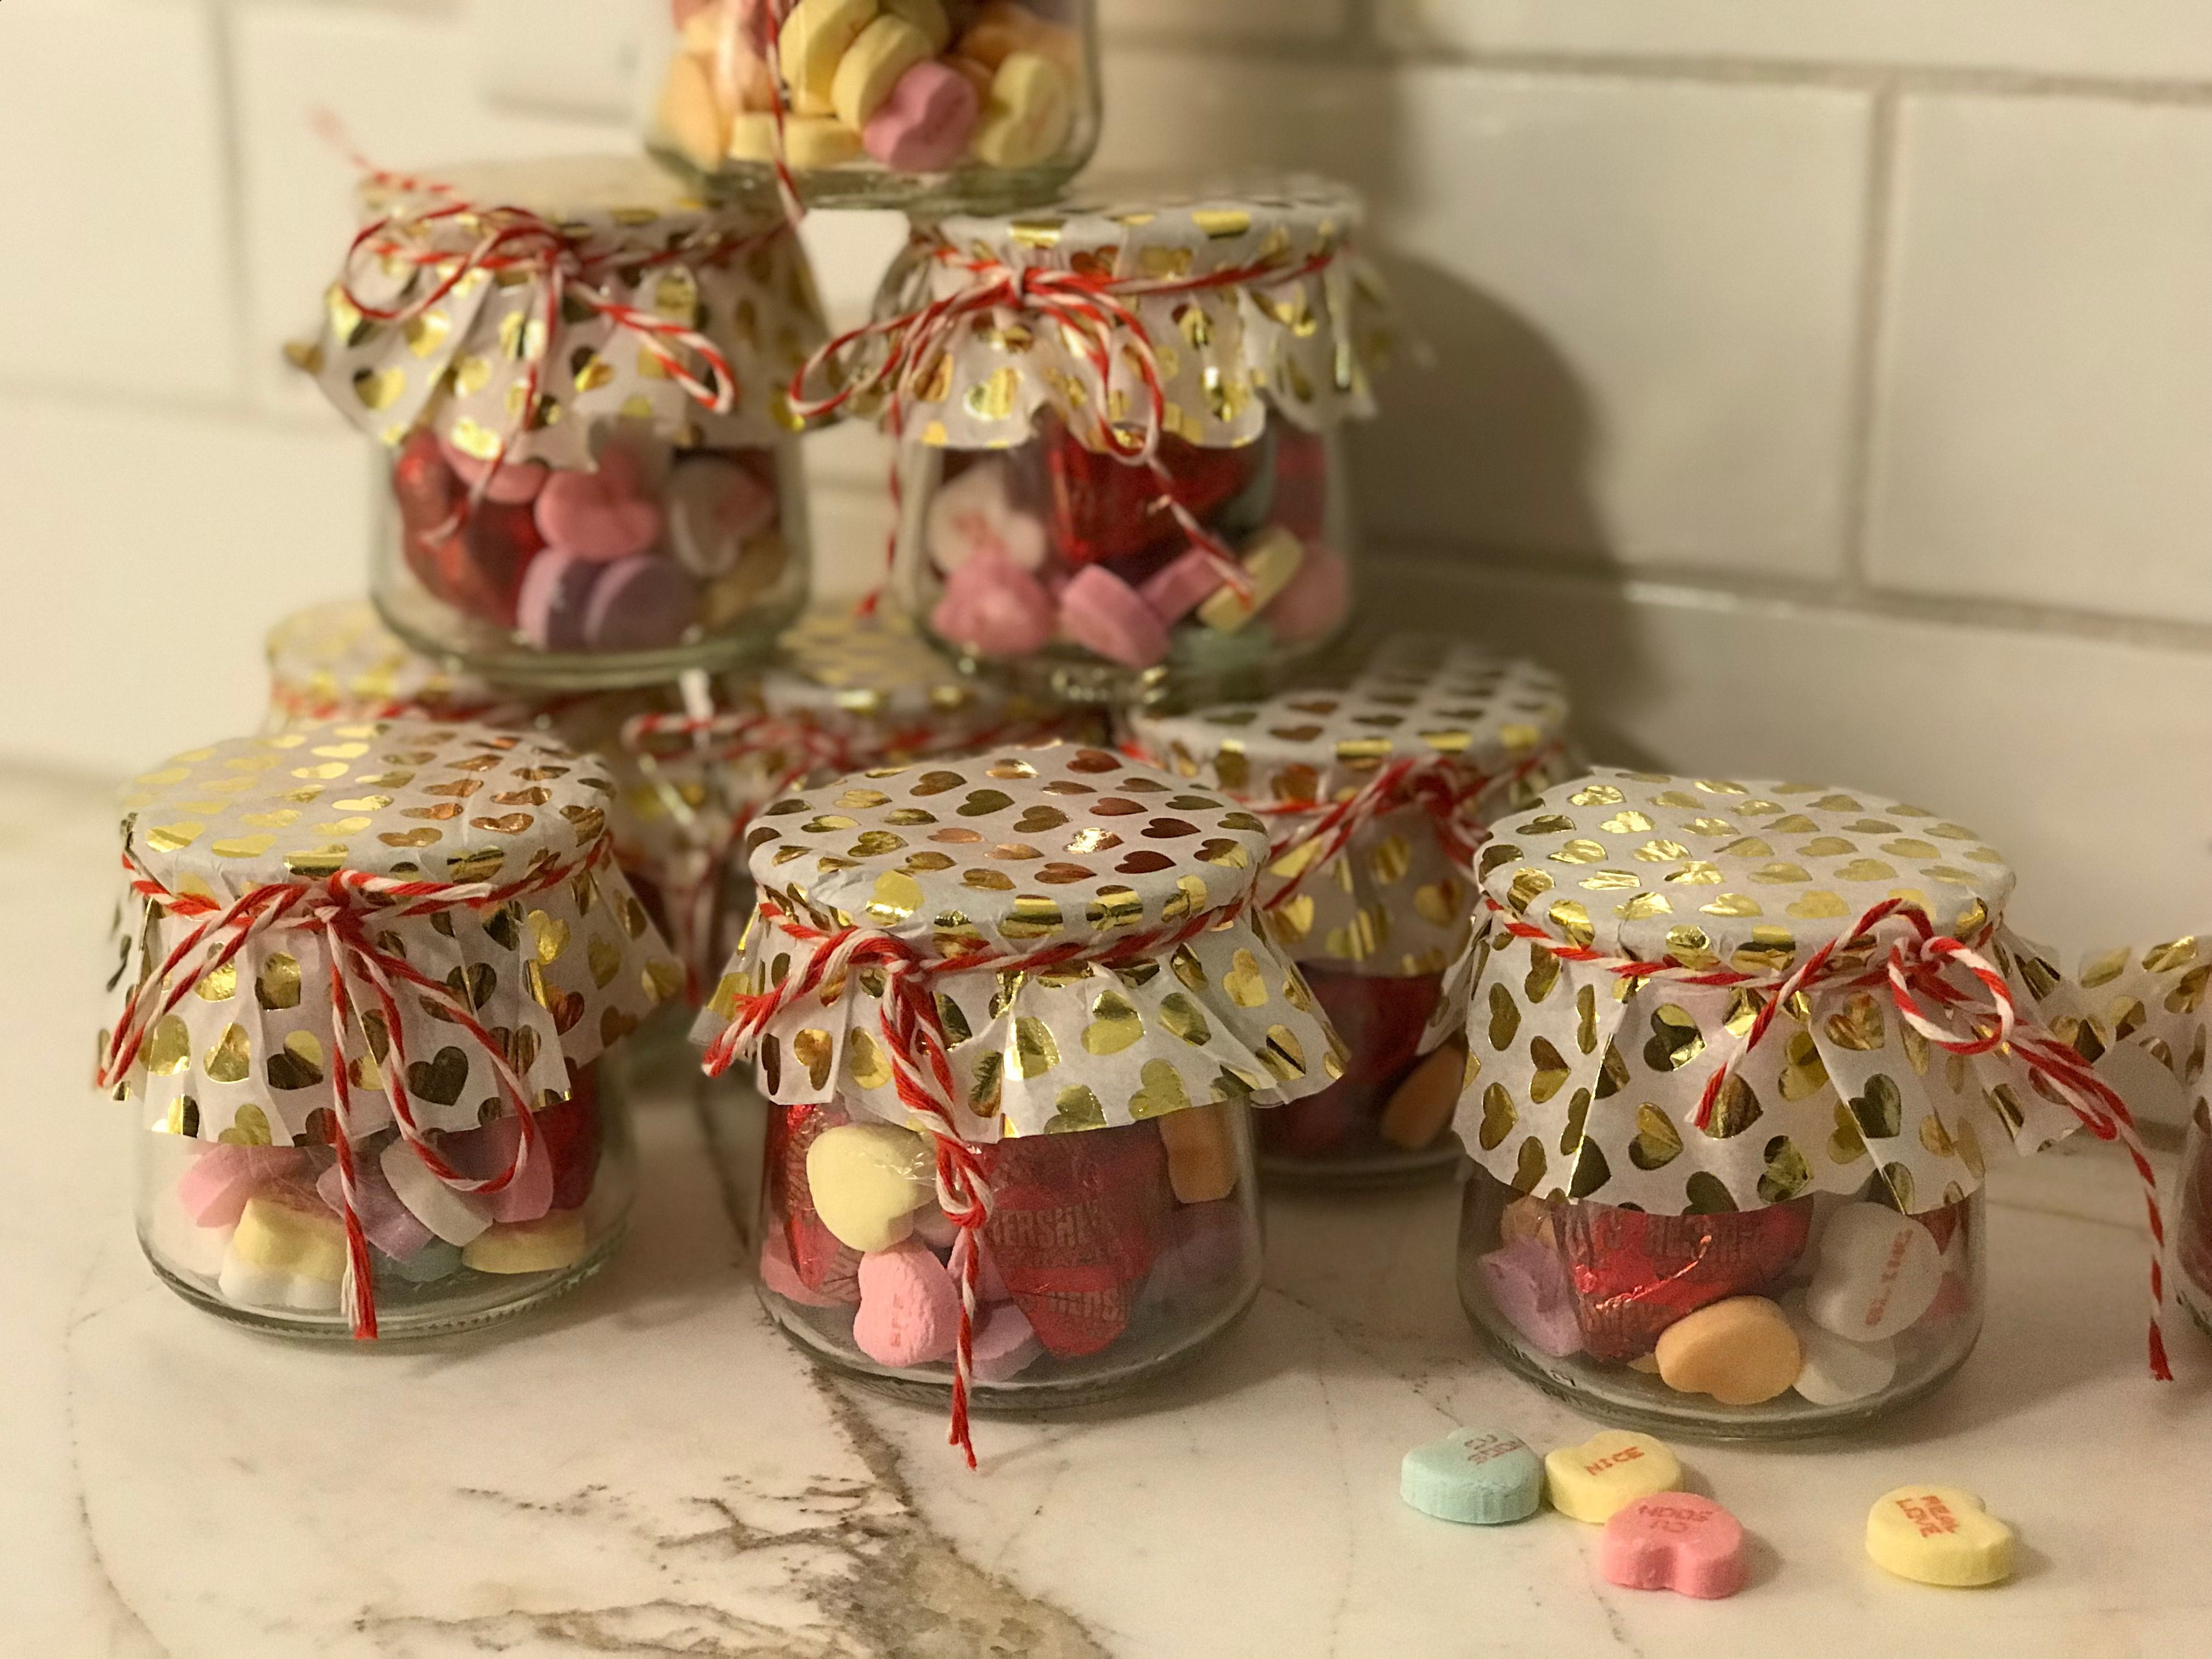 Happy Valentine Day J Aime Ca 1 More Idea For Yoplait Oui Jars Crafts With Glass Jars Baby Food Jar Crafts Jar Crafts